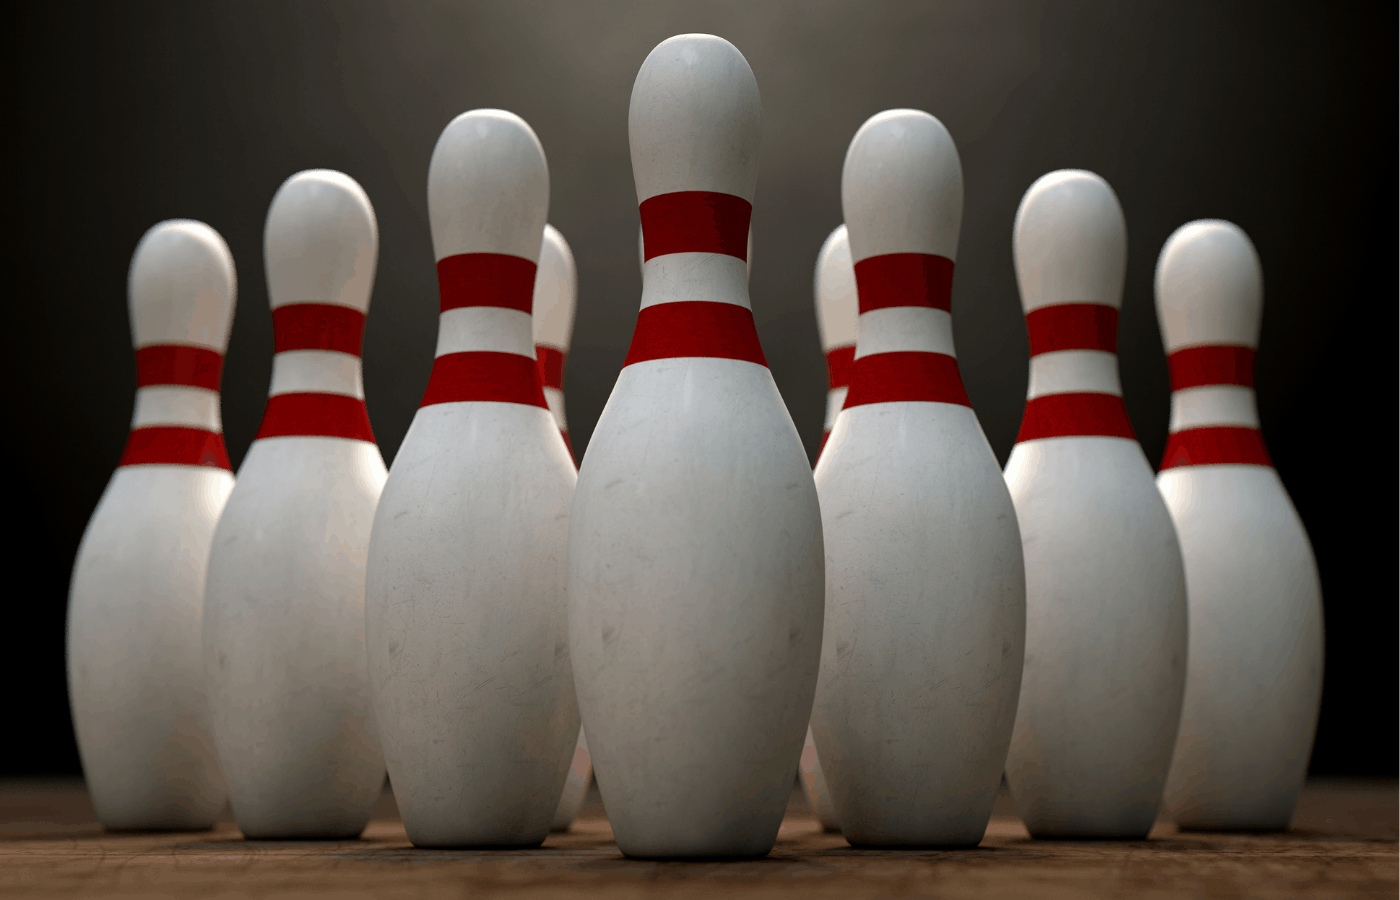 how much do bowling pins cost